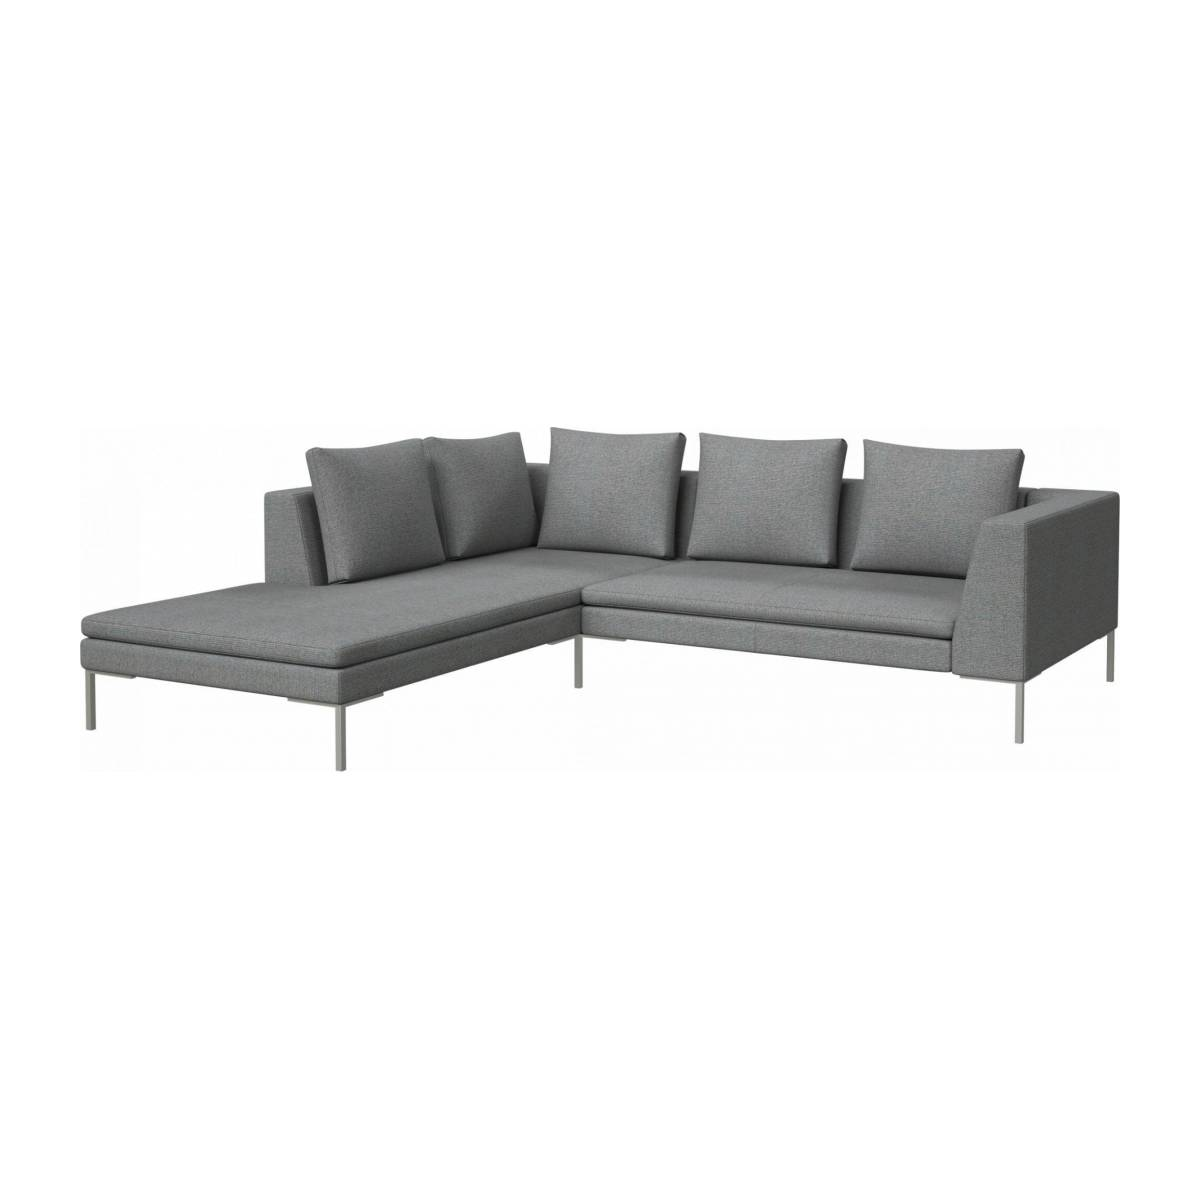 2 seater sofa with chaise longue on the left in Lecce fabric, blue reef  n°2